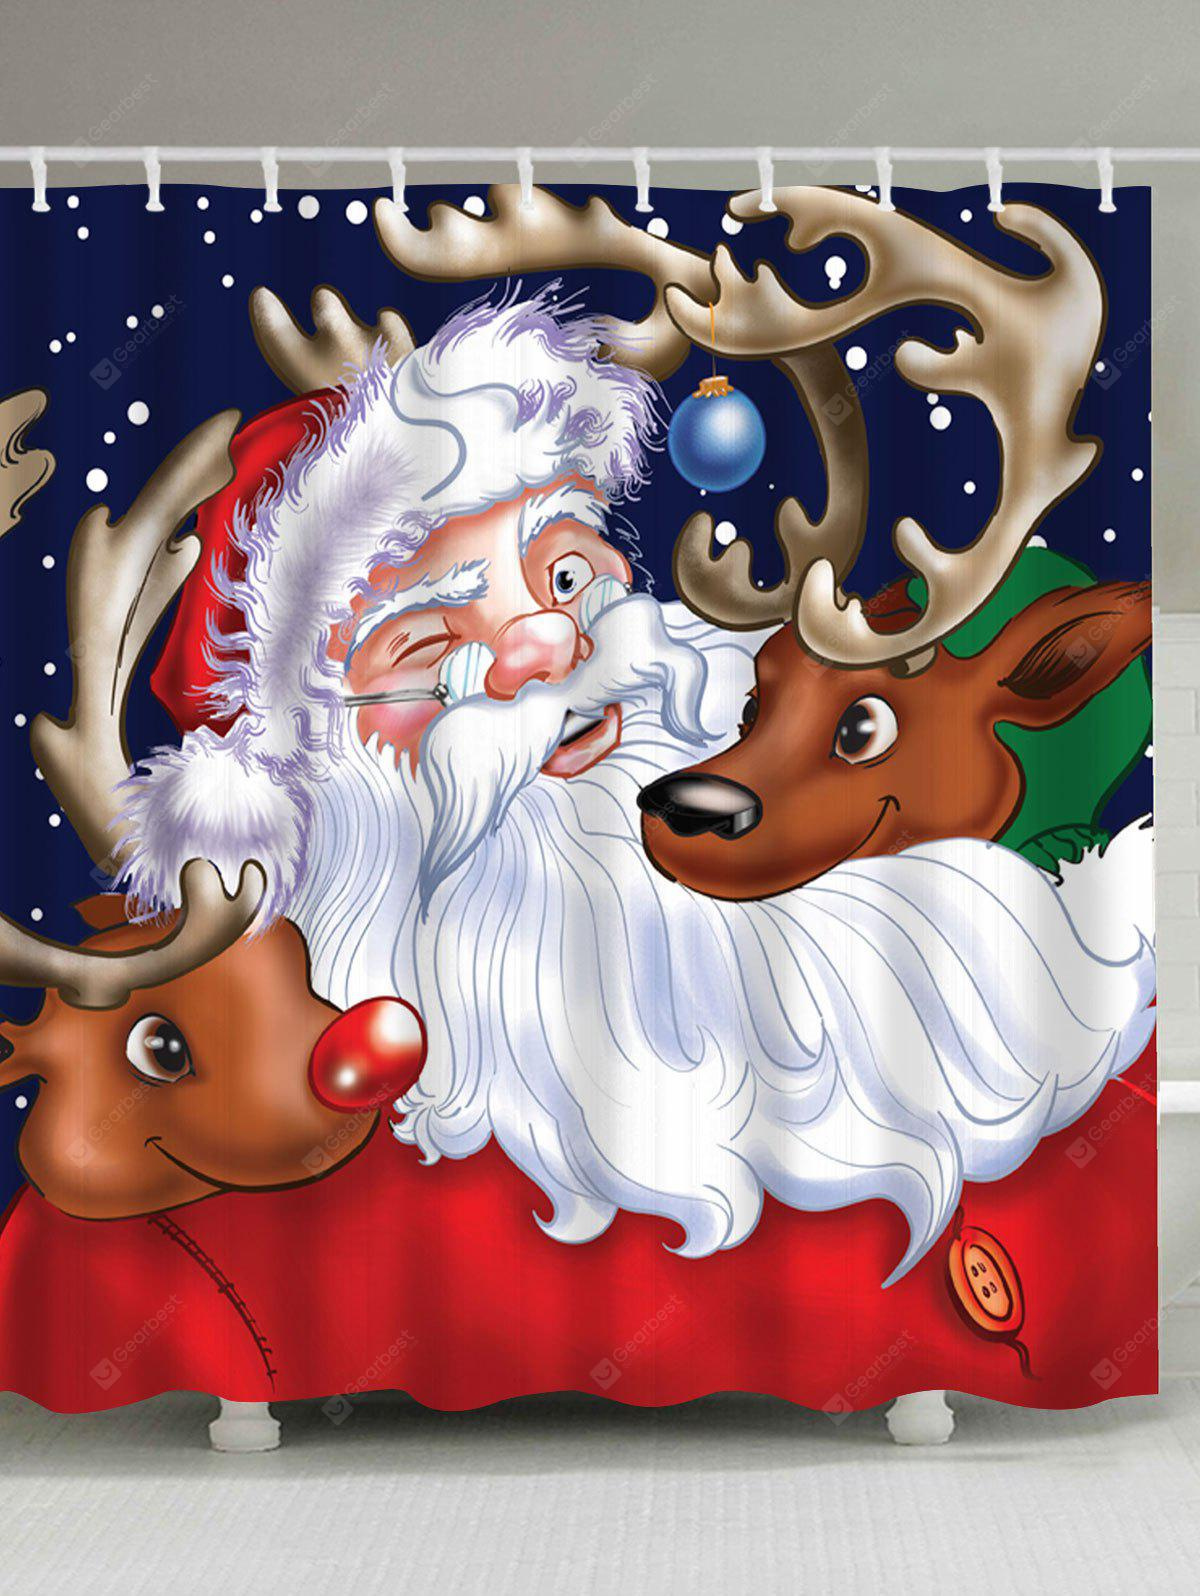 Santa Claus Reindeer Christmas Waterproof Shower Curtain